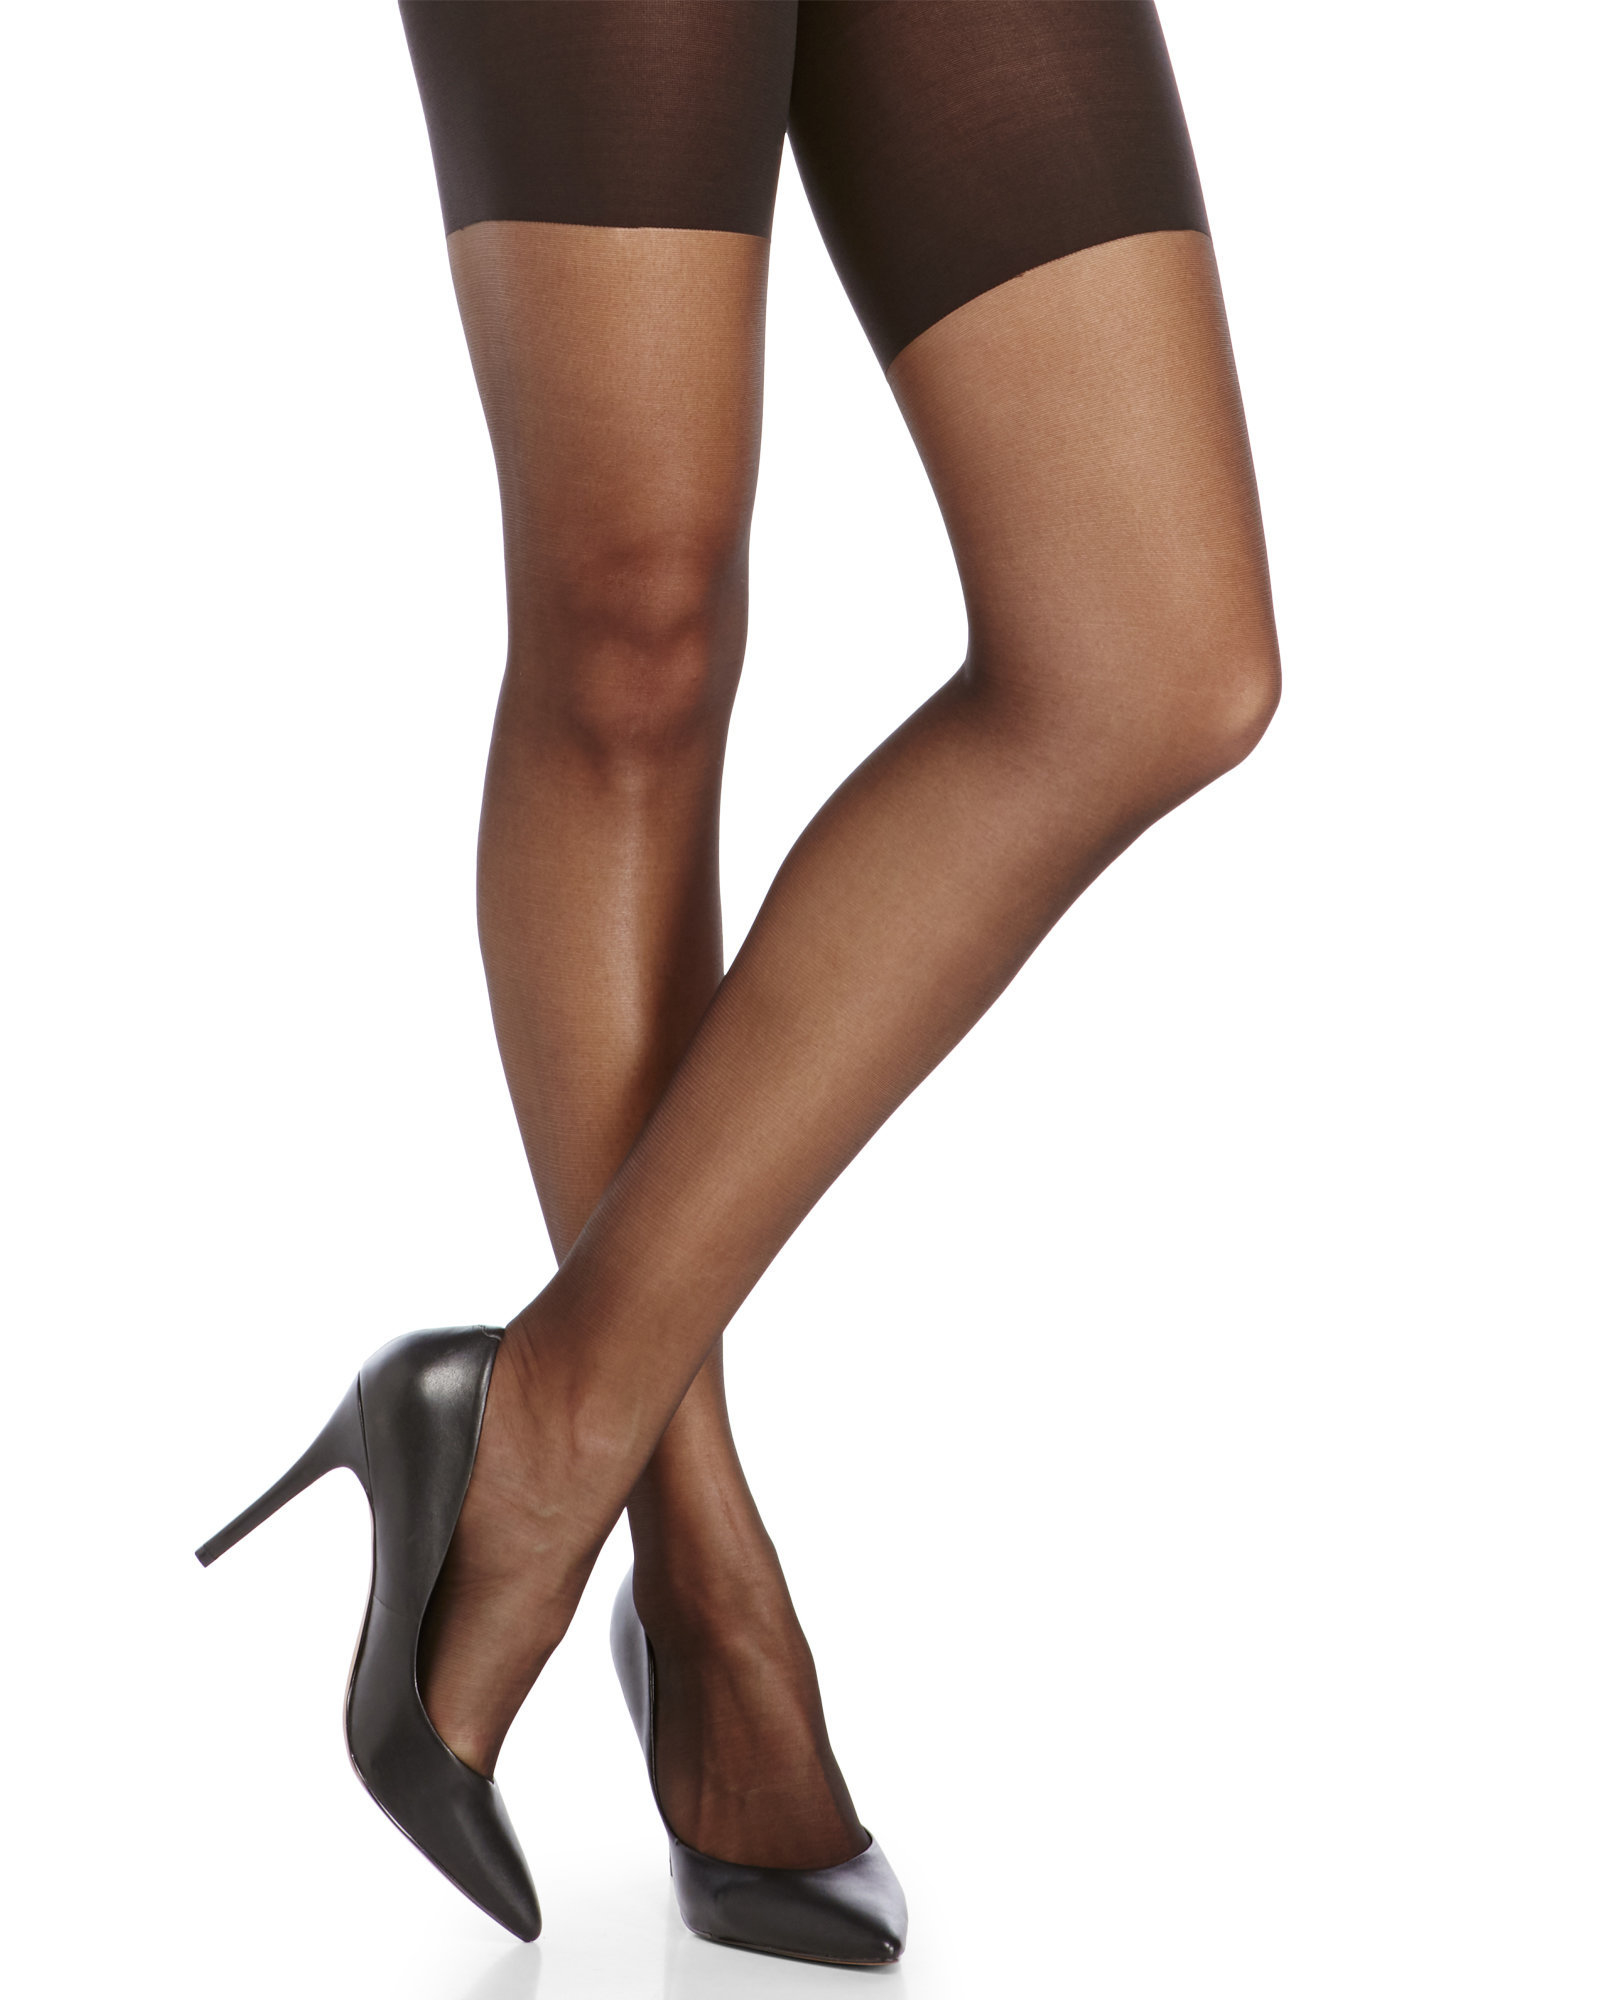 Shop pantyhose at Bare Necessities! We carry women's pantyhose in a wide variety of colors, patterns and materials from the top brands in women's hosiery.